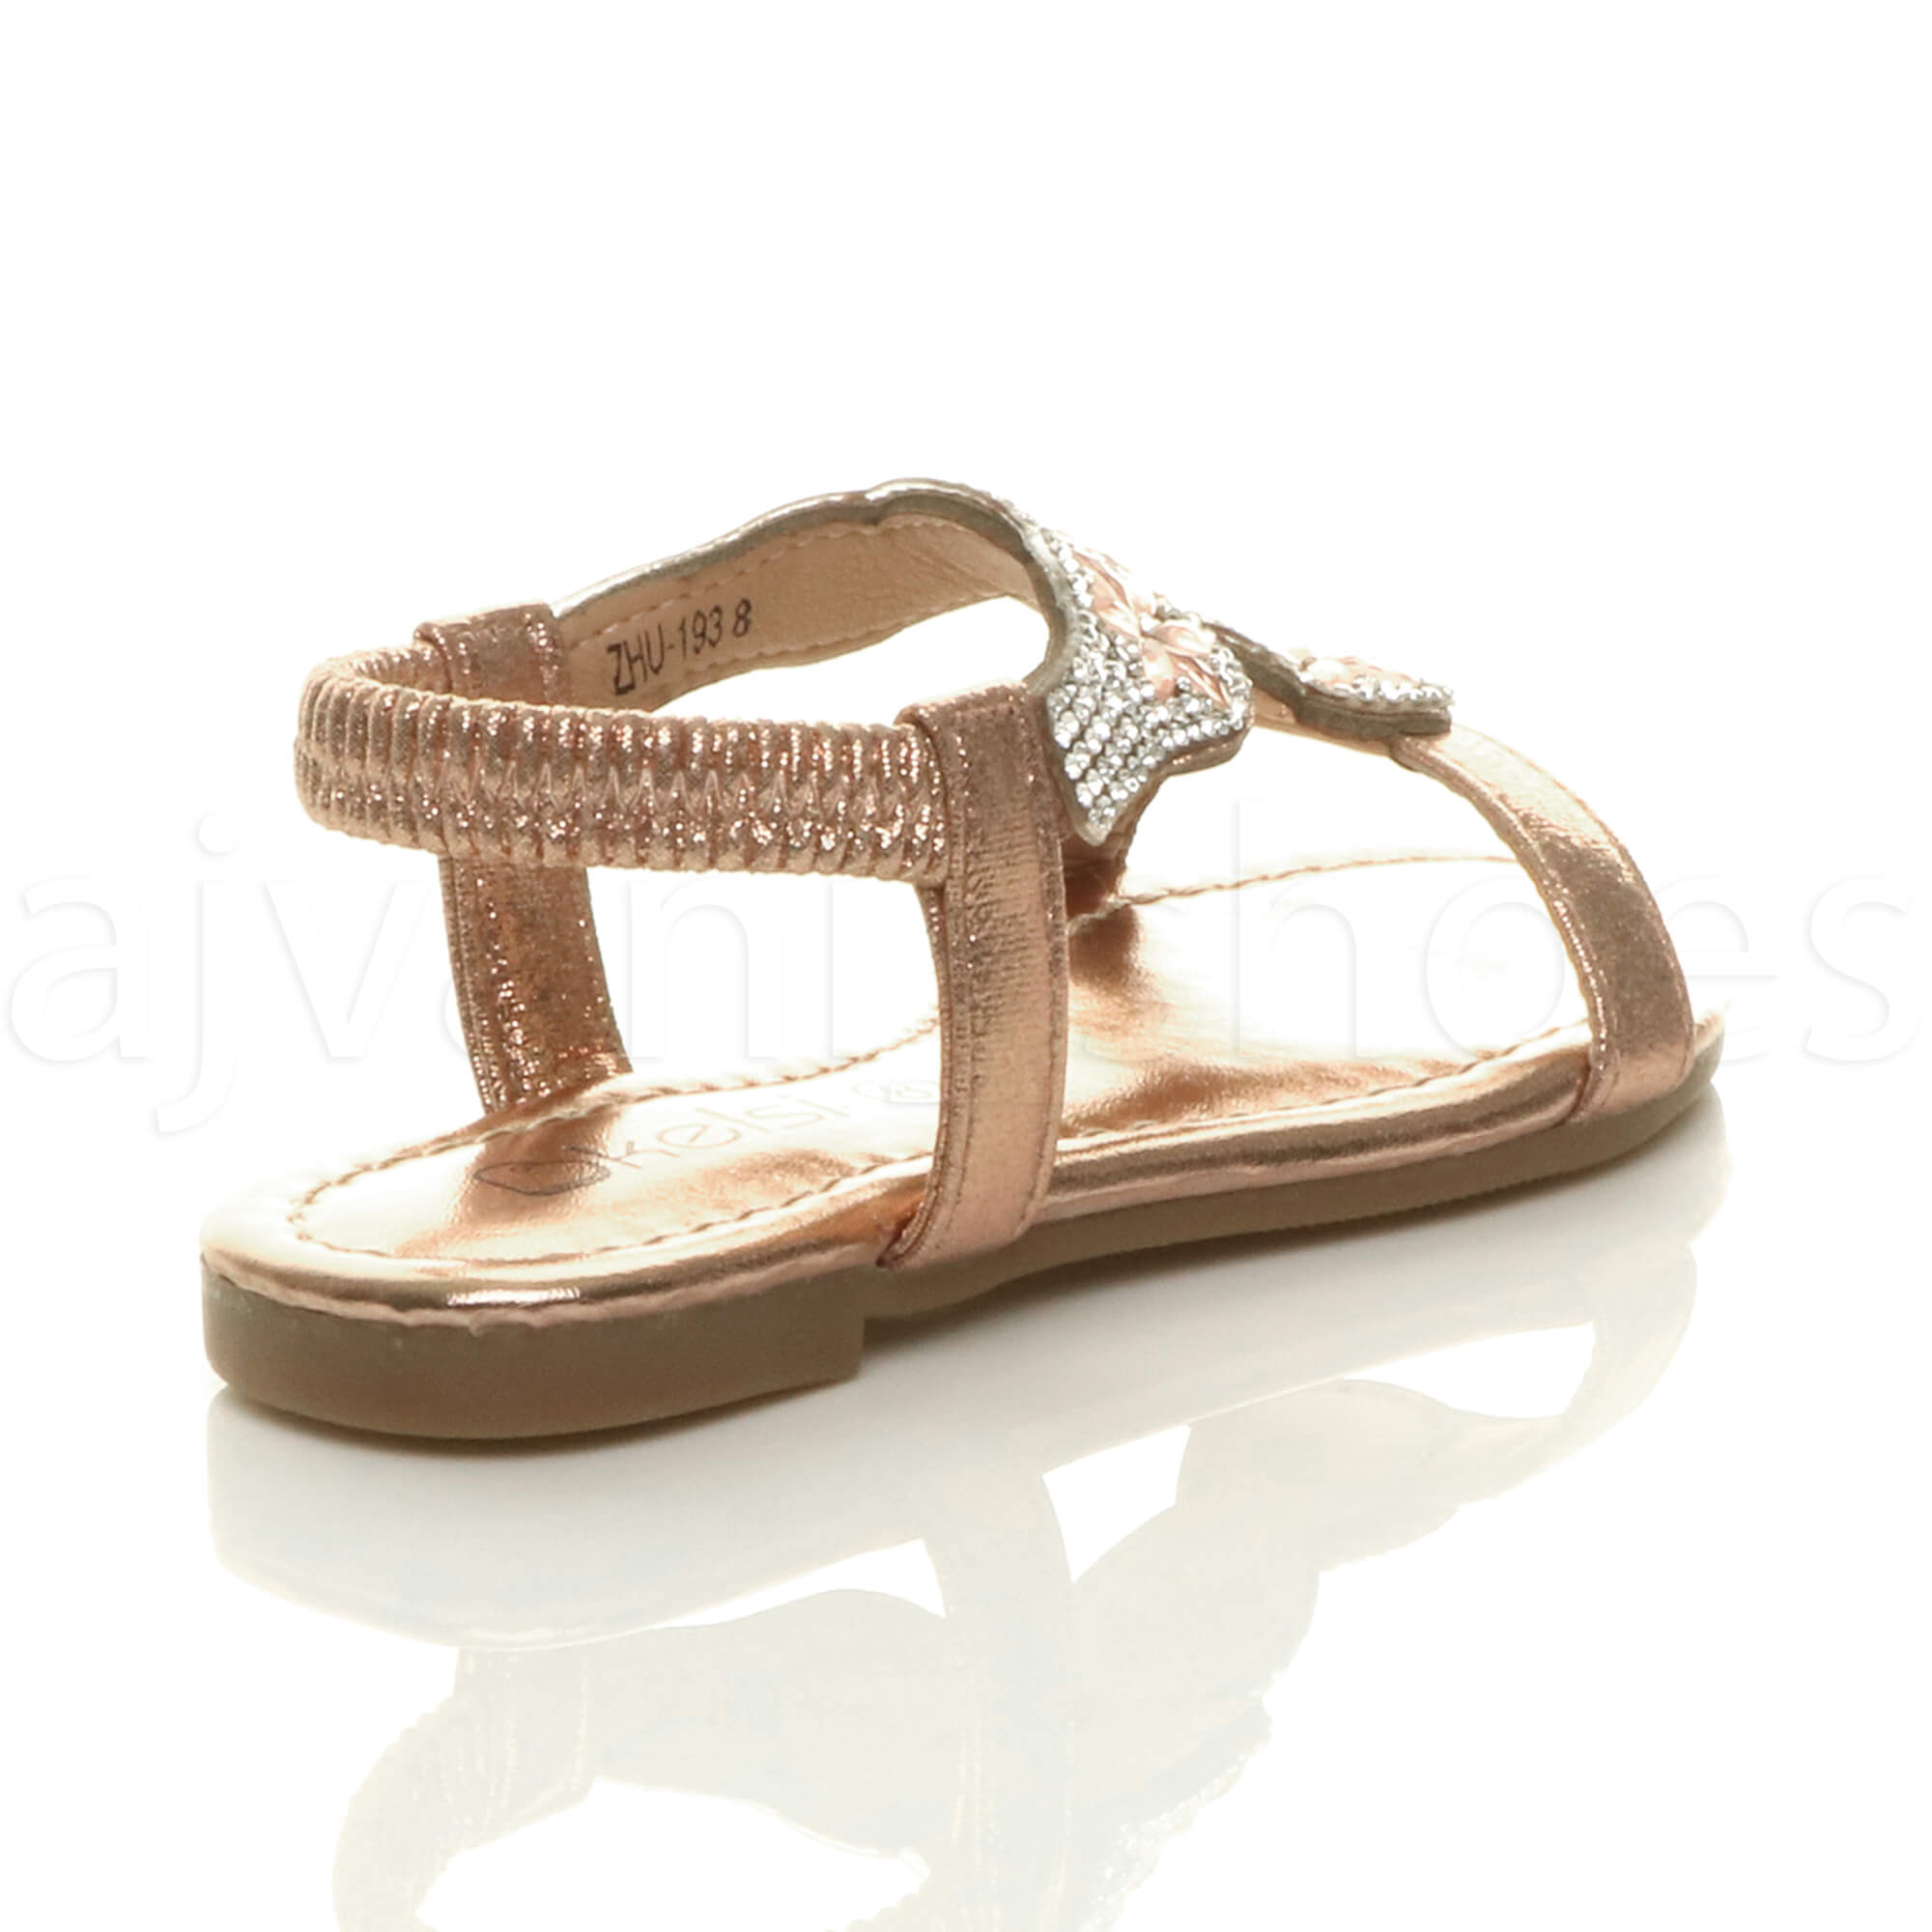 GIRLS-KIDS-CHILDRENS-FLAT-DIAMANTE-FLOWER-T-BAR-STRETCH-SLINGBACK-SANDALS-SIZE